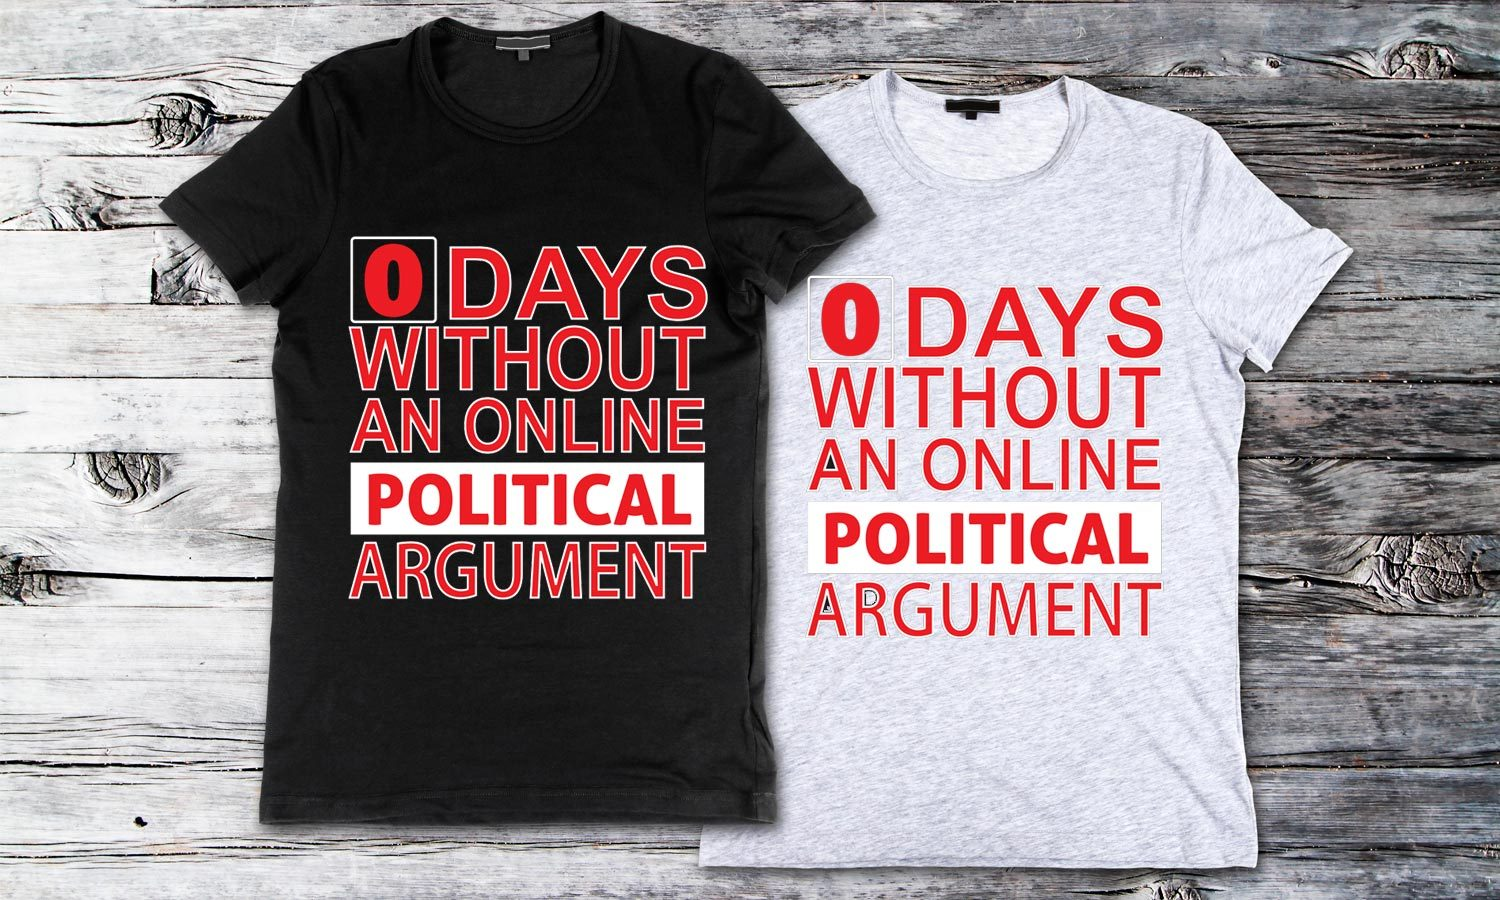 Without Political - Printed T-Shirt for Men, Women and Kids - TS228